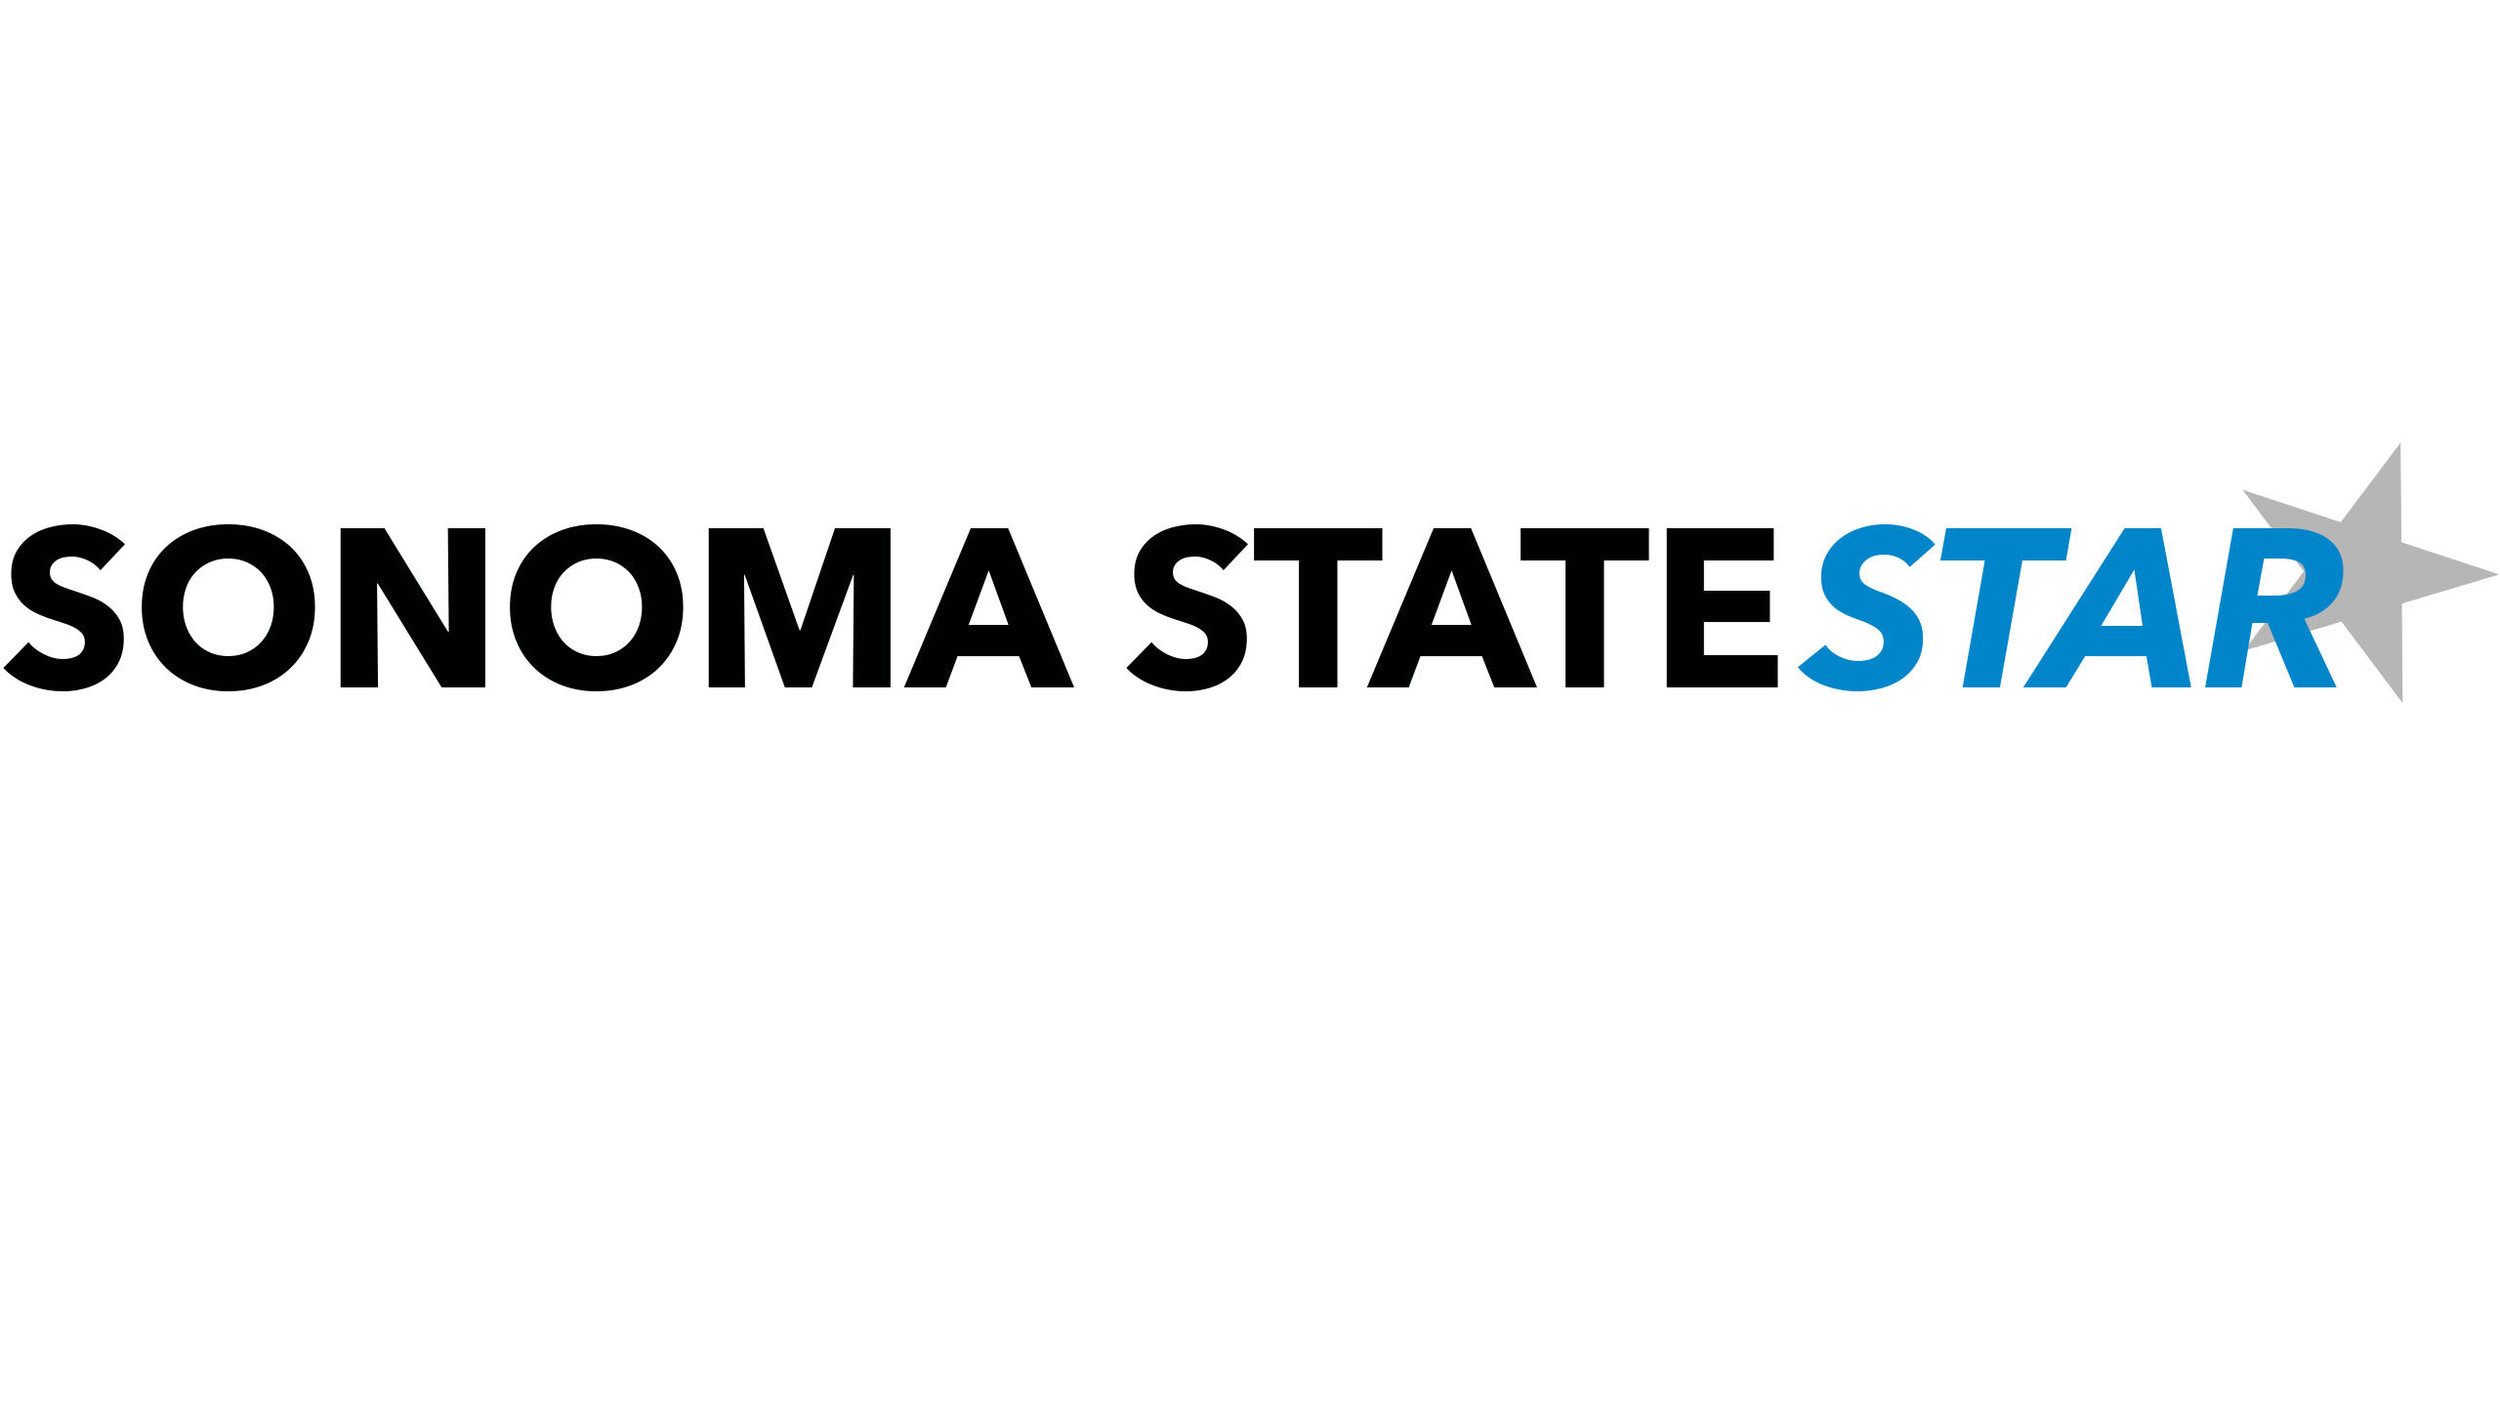 About Us — Sonoma State Star - The university's student-run